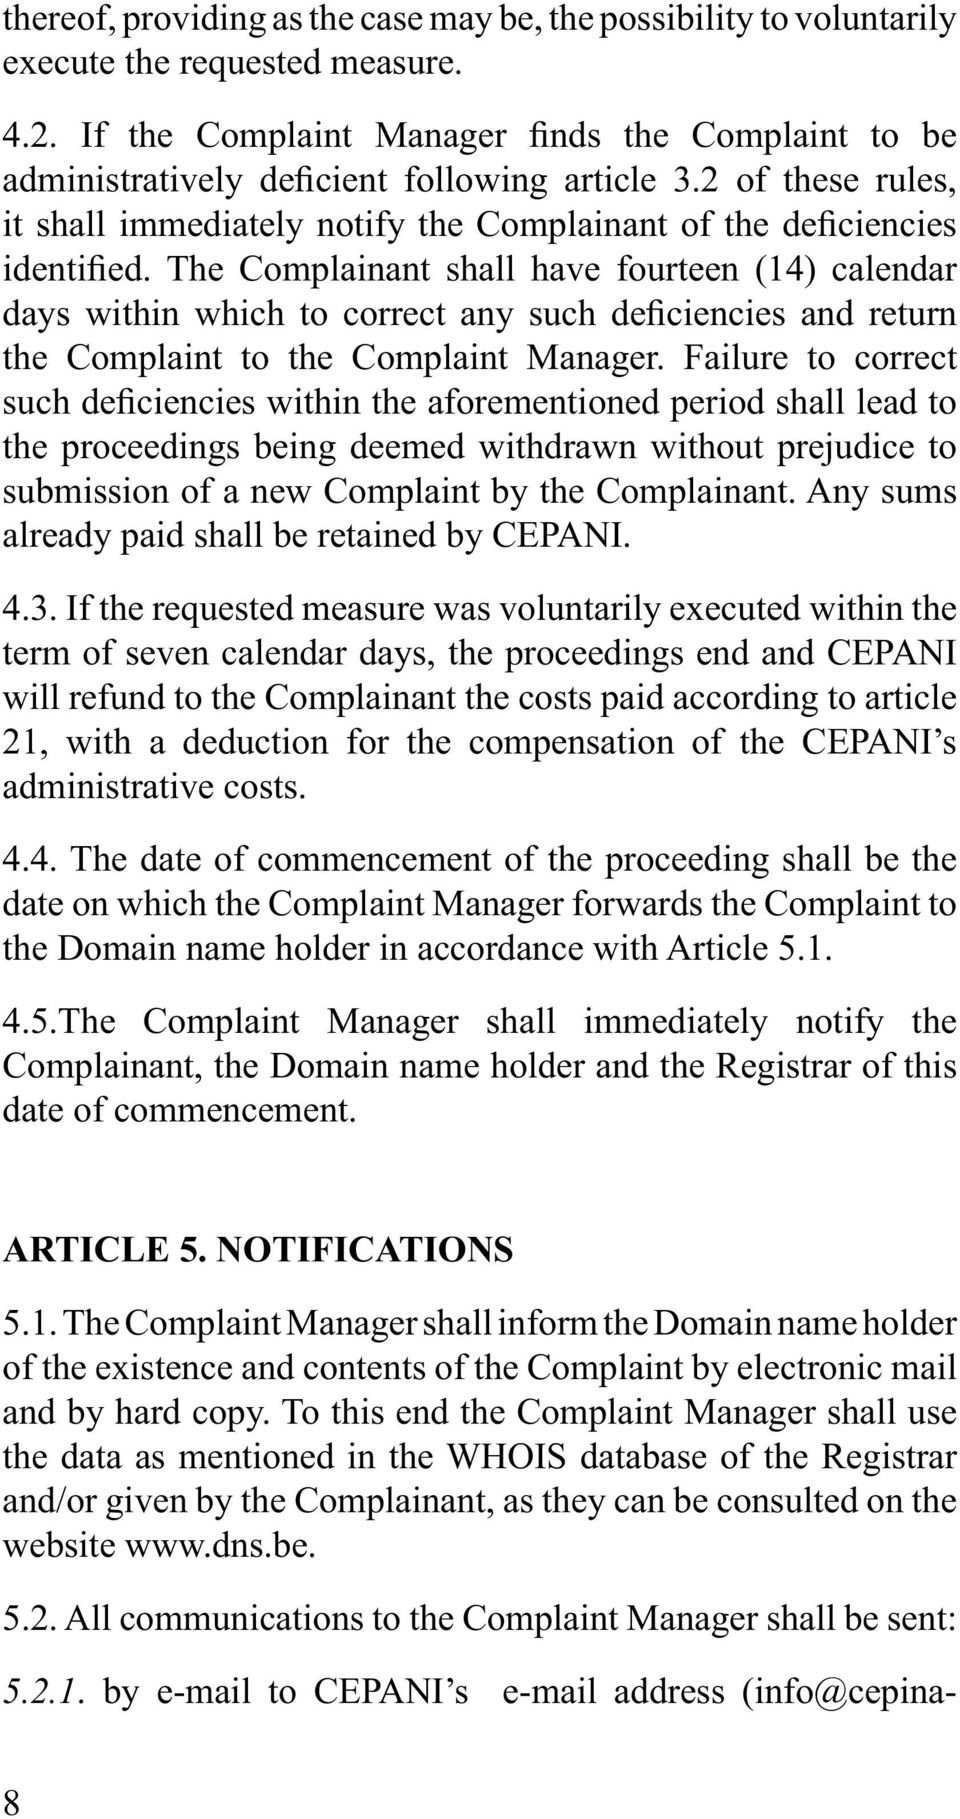 If the requested measure was voluntarily executed within the term of seven calendar days, the proceedings end and CEPANI will refund to the Complainant the costs paid according to article 21, with a